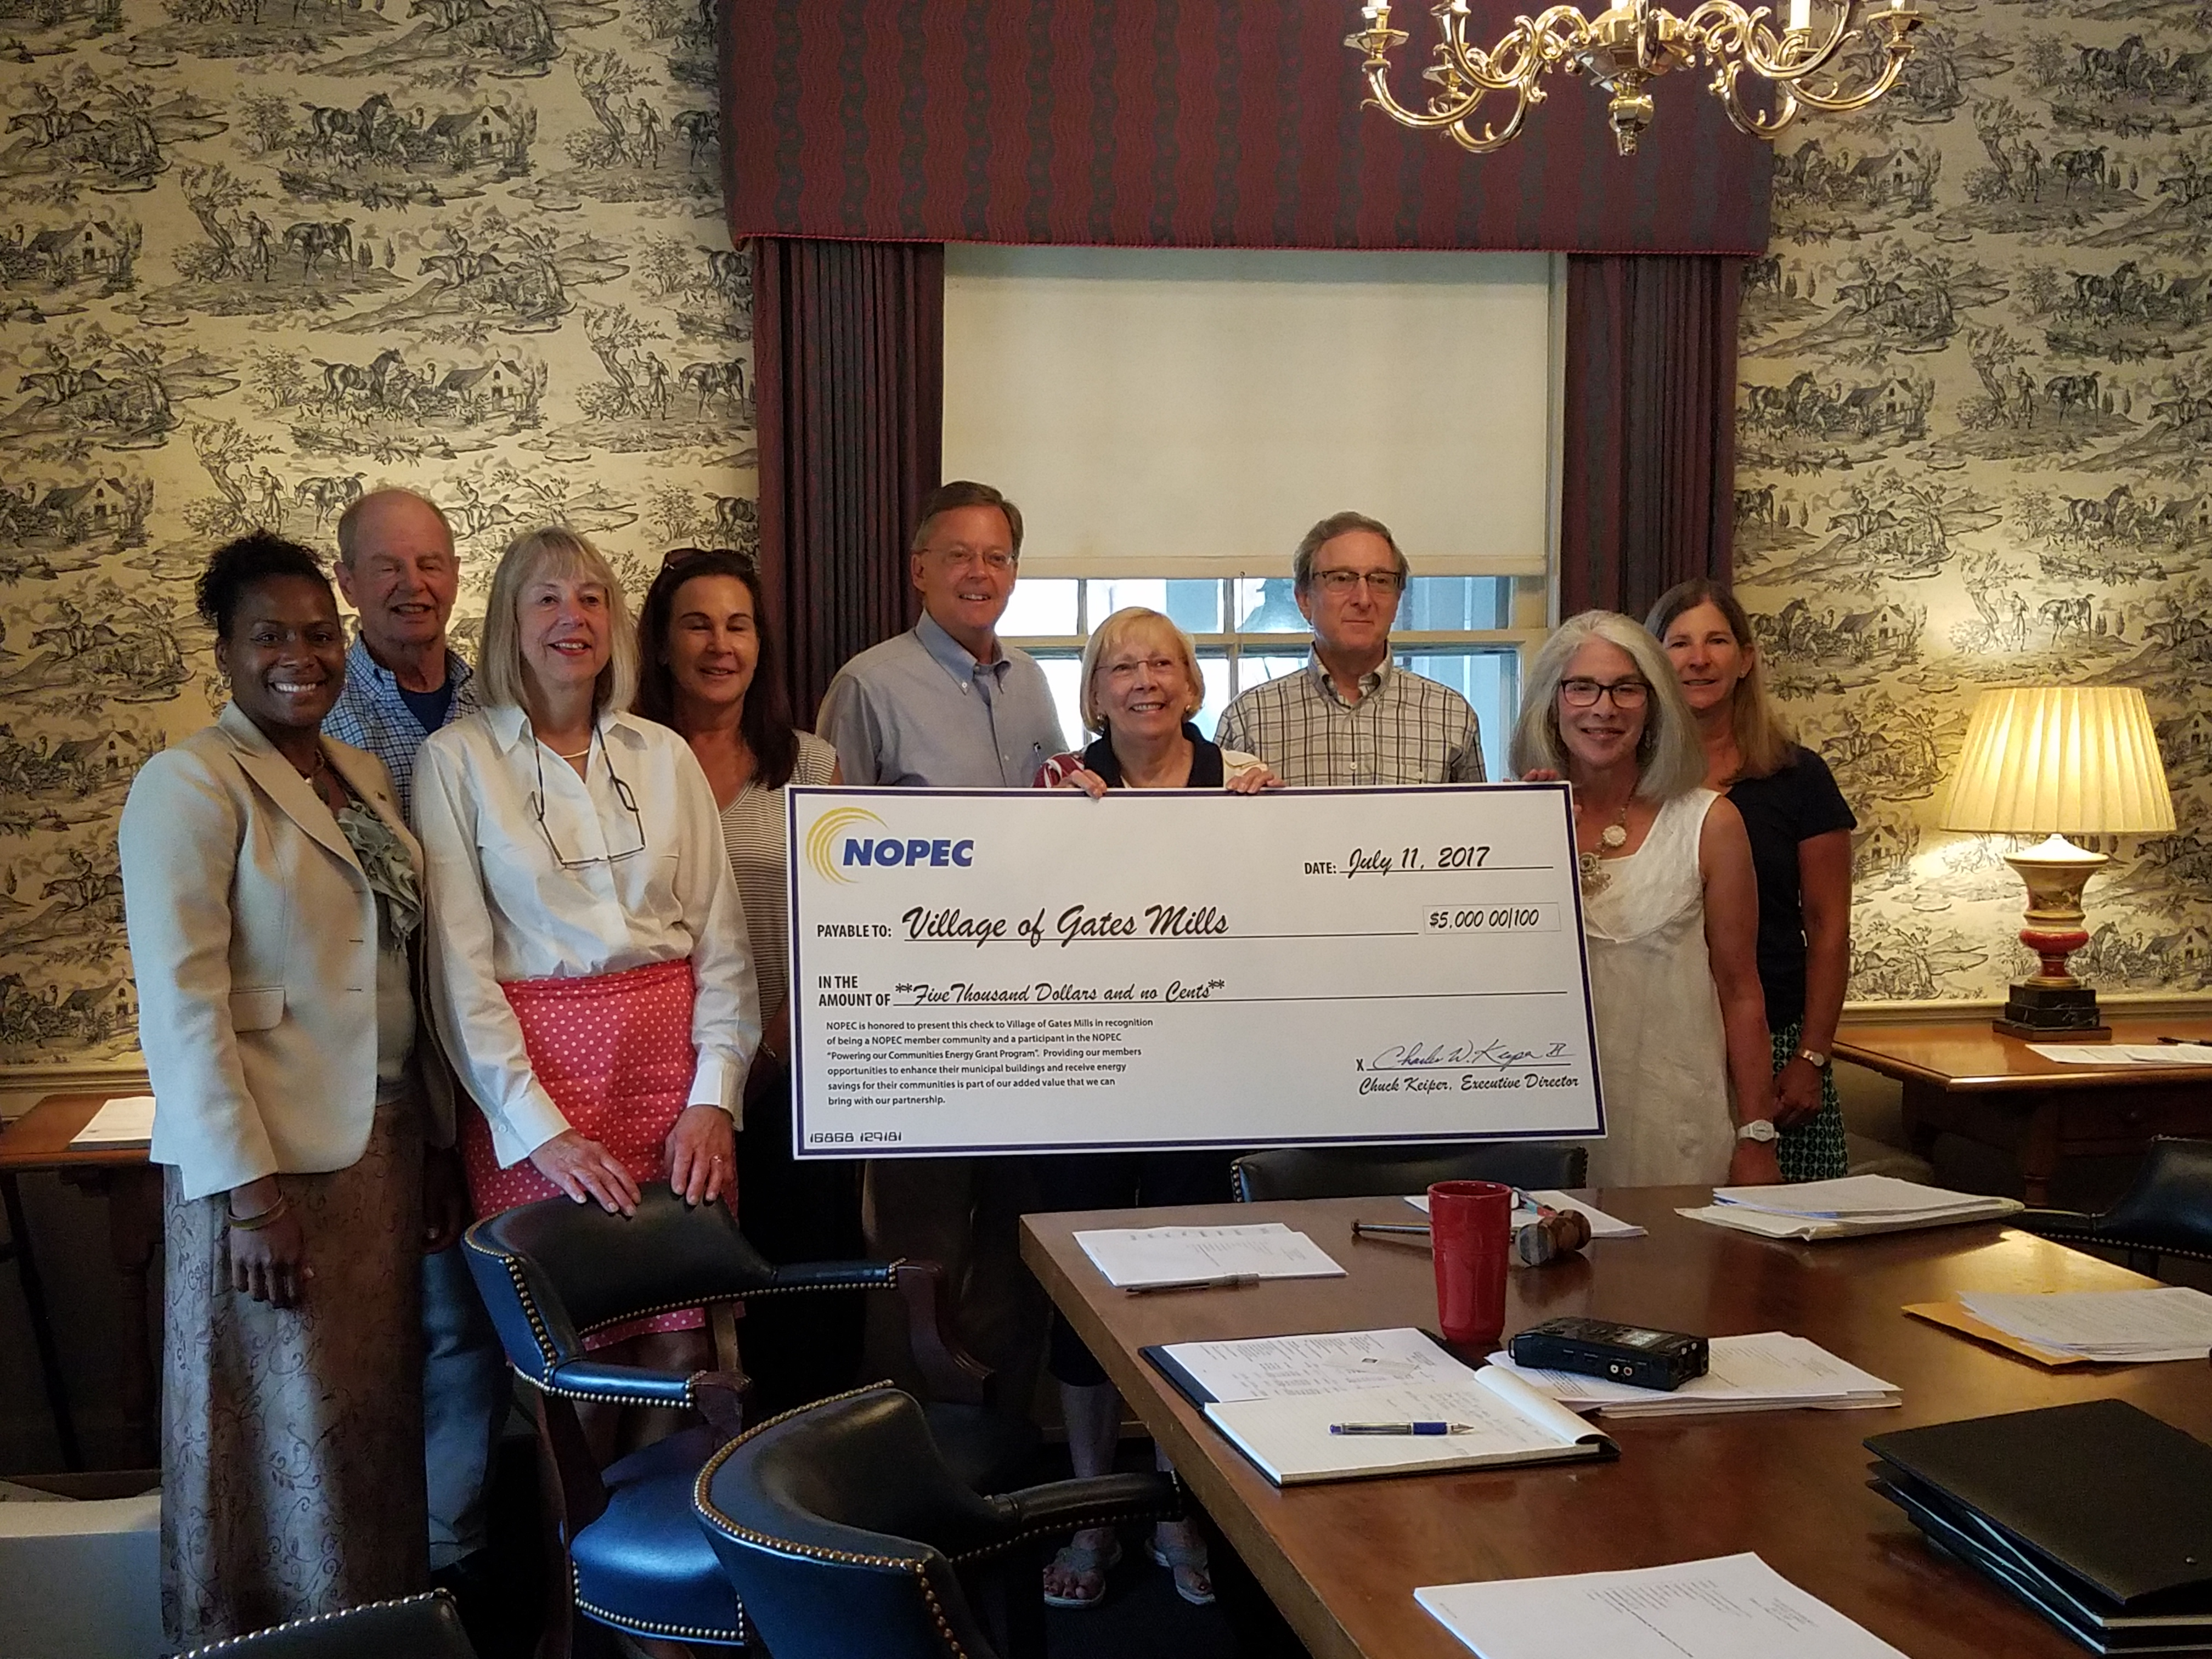 News Article - NOPEC Finalizes $5,000 Grant Award To the Village of